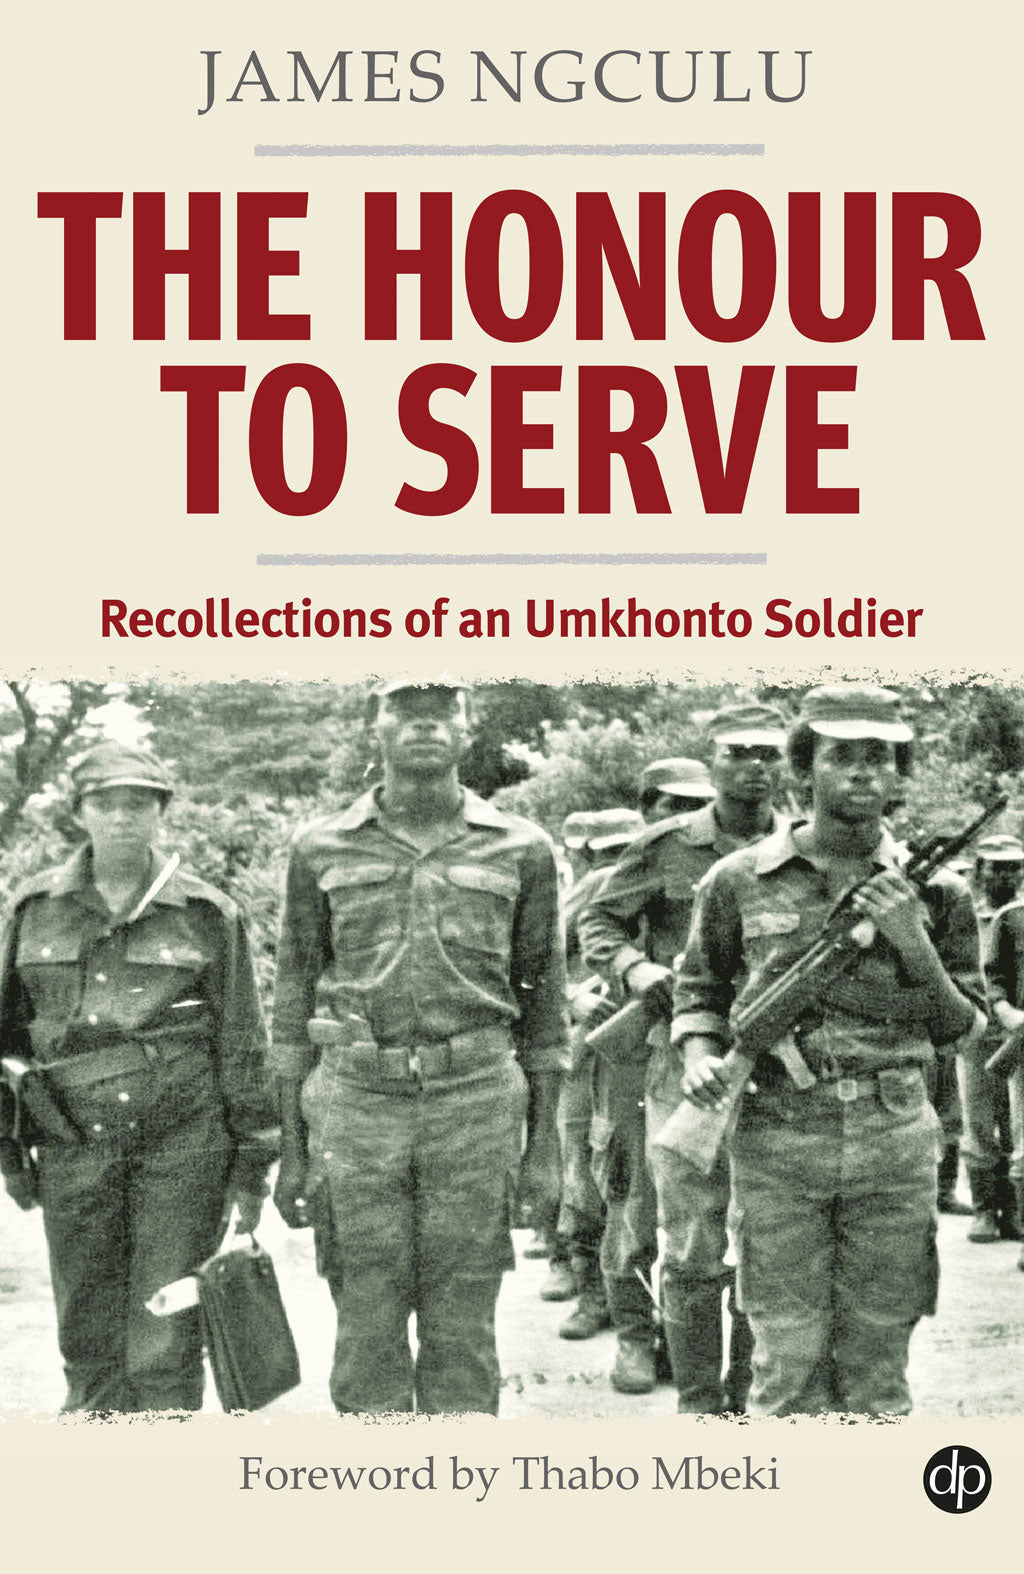 THE HONOUR TO SERVE: Recollections of an Umkhonto Soldier